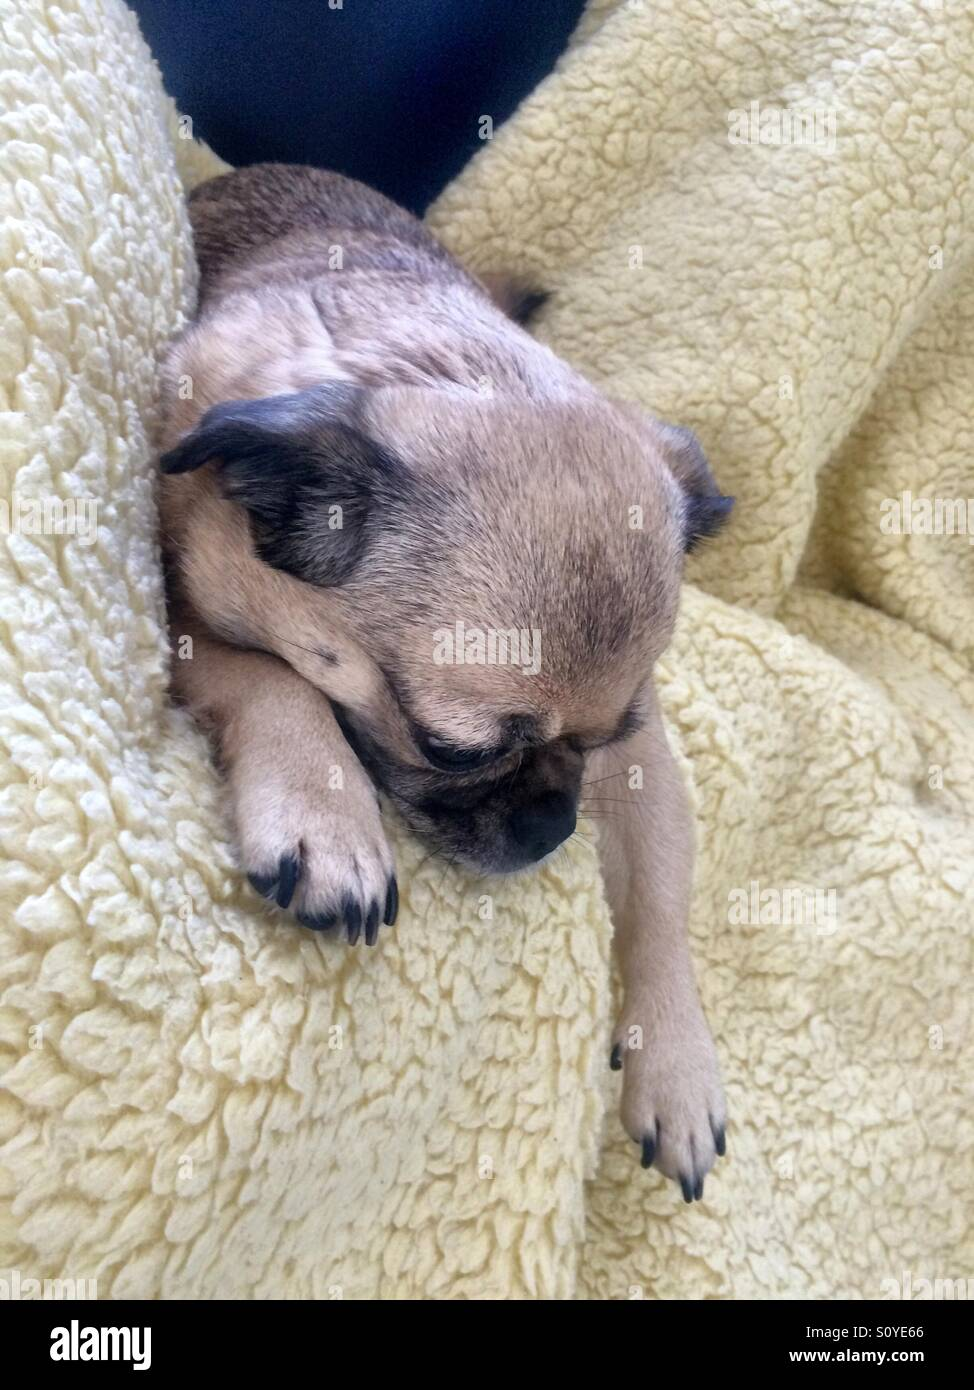 Cute pug being lazy - Stock Image